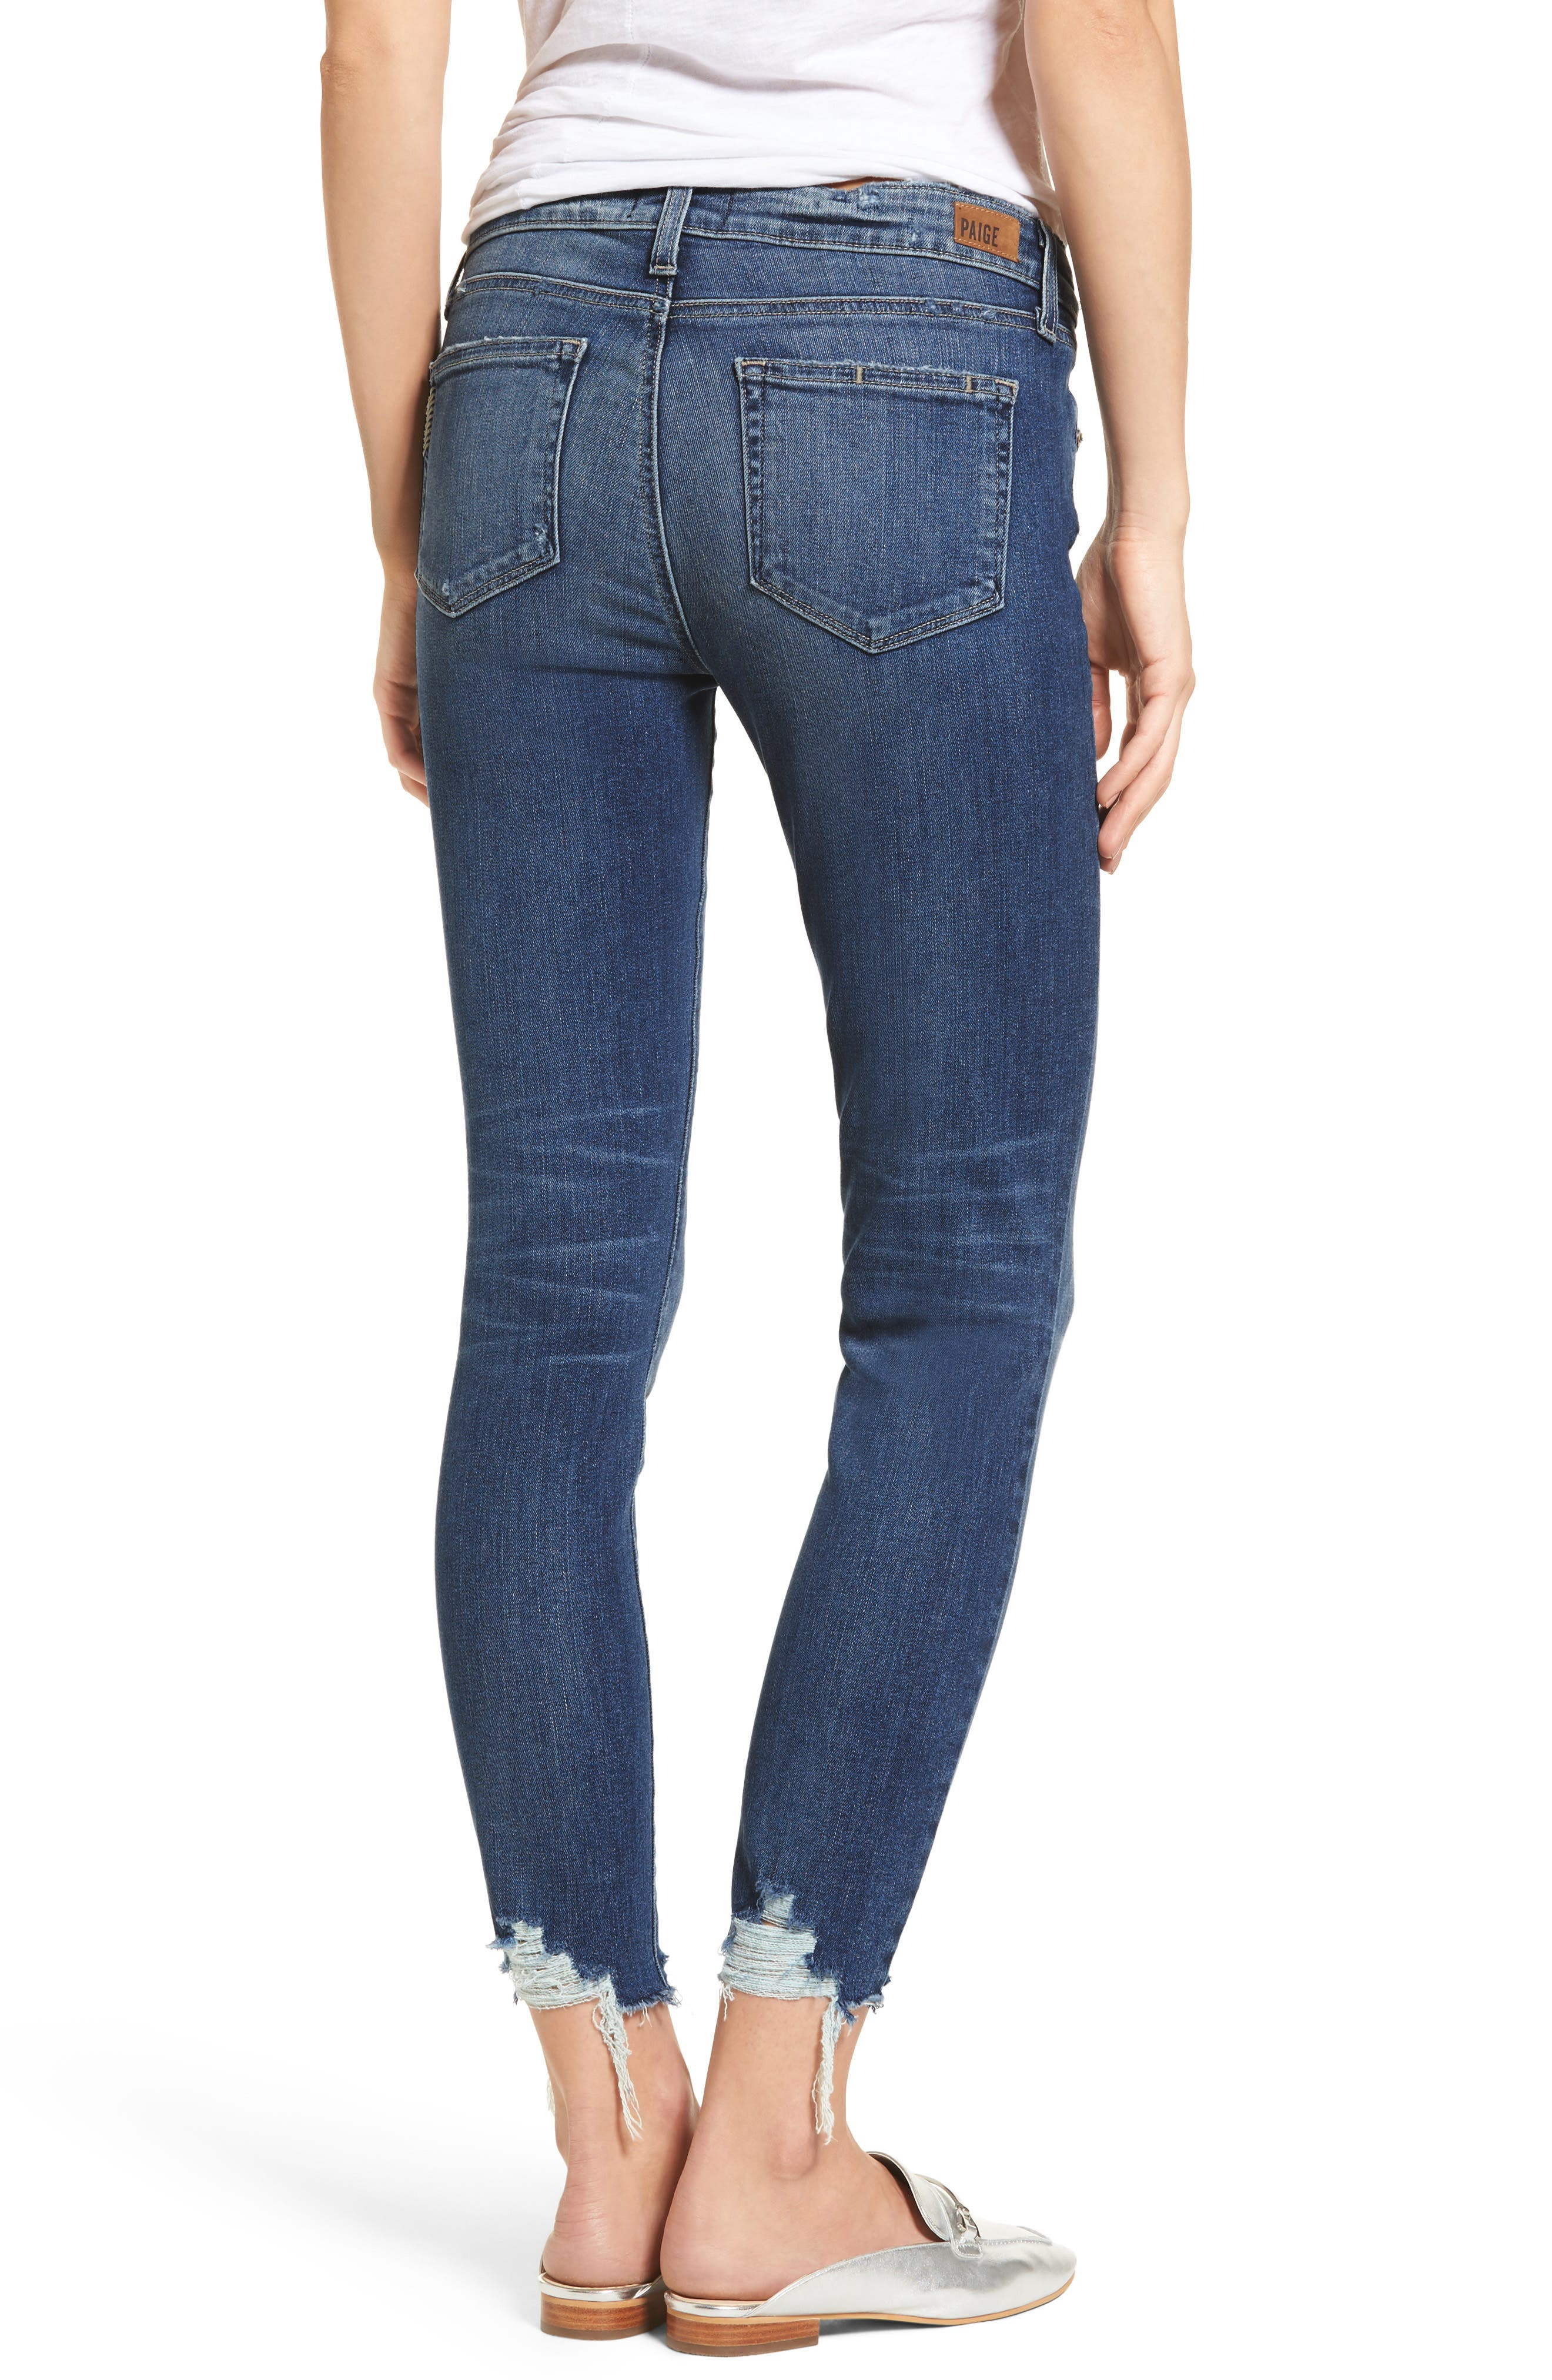 Transcend Vintage - Verdugo Ankle Skinny Jeans,                             Alternate thumbnail 2, color,                             Malibu Super Distressed